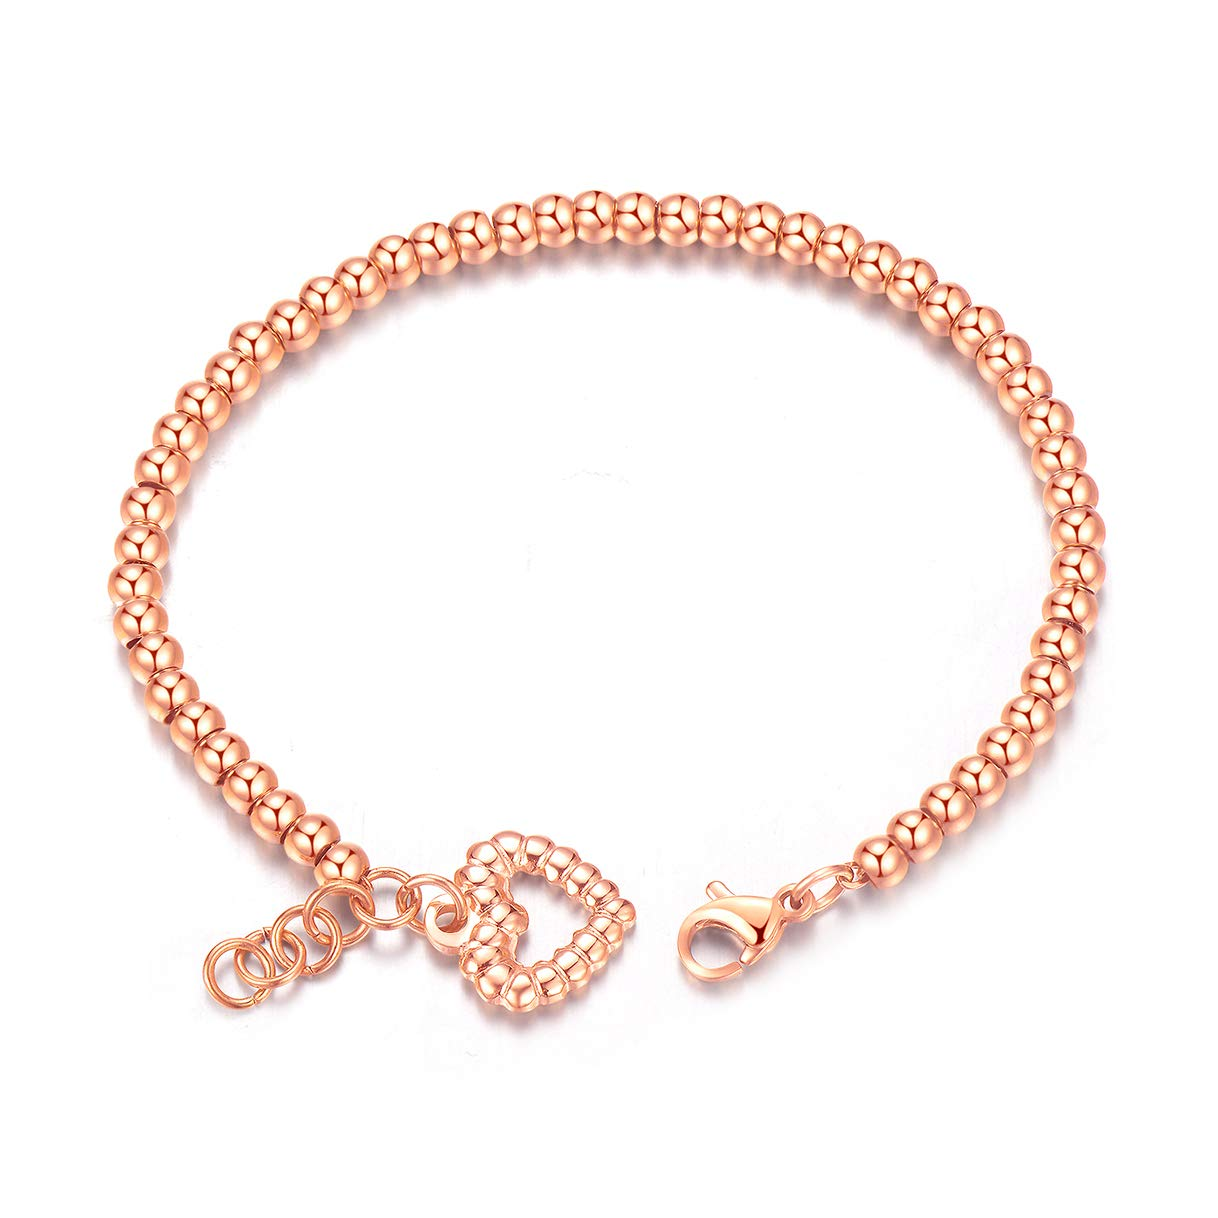 CHARMFAME Rose Gold Plated Stainless Steel Love Heart Beaded Bracelet Fashion Jewelry for Women /& Girls